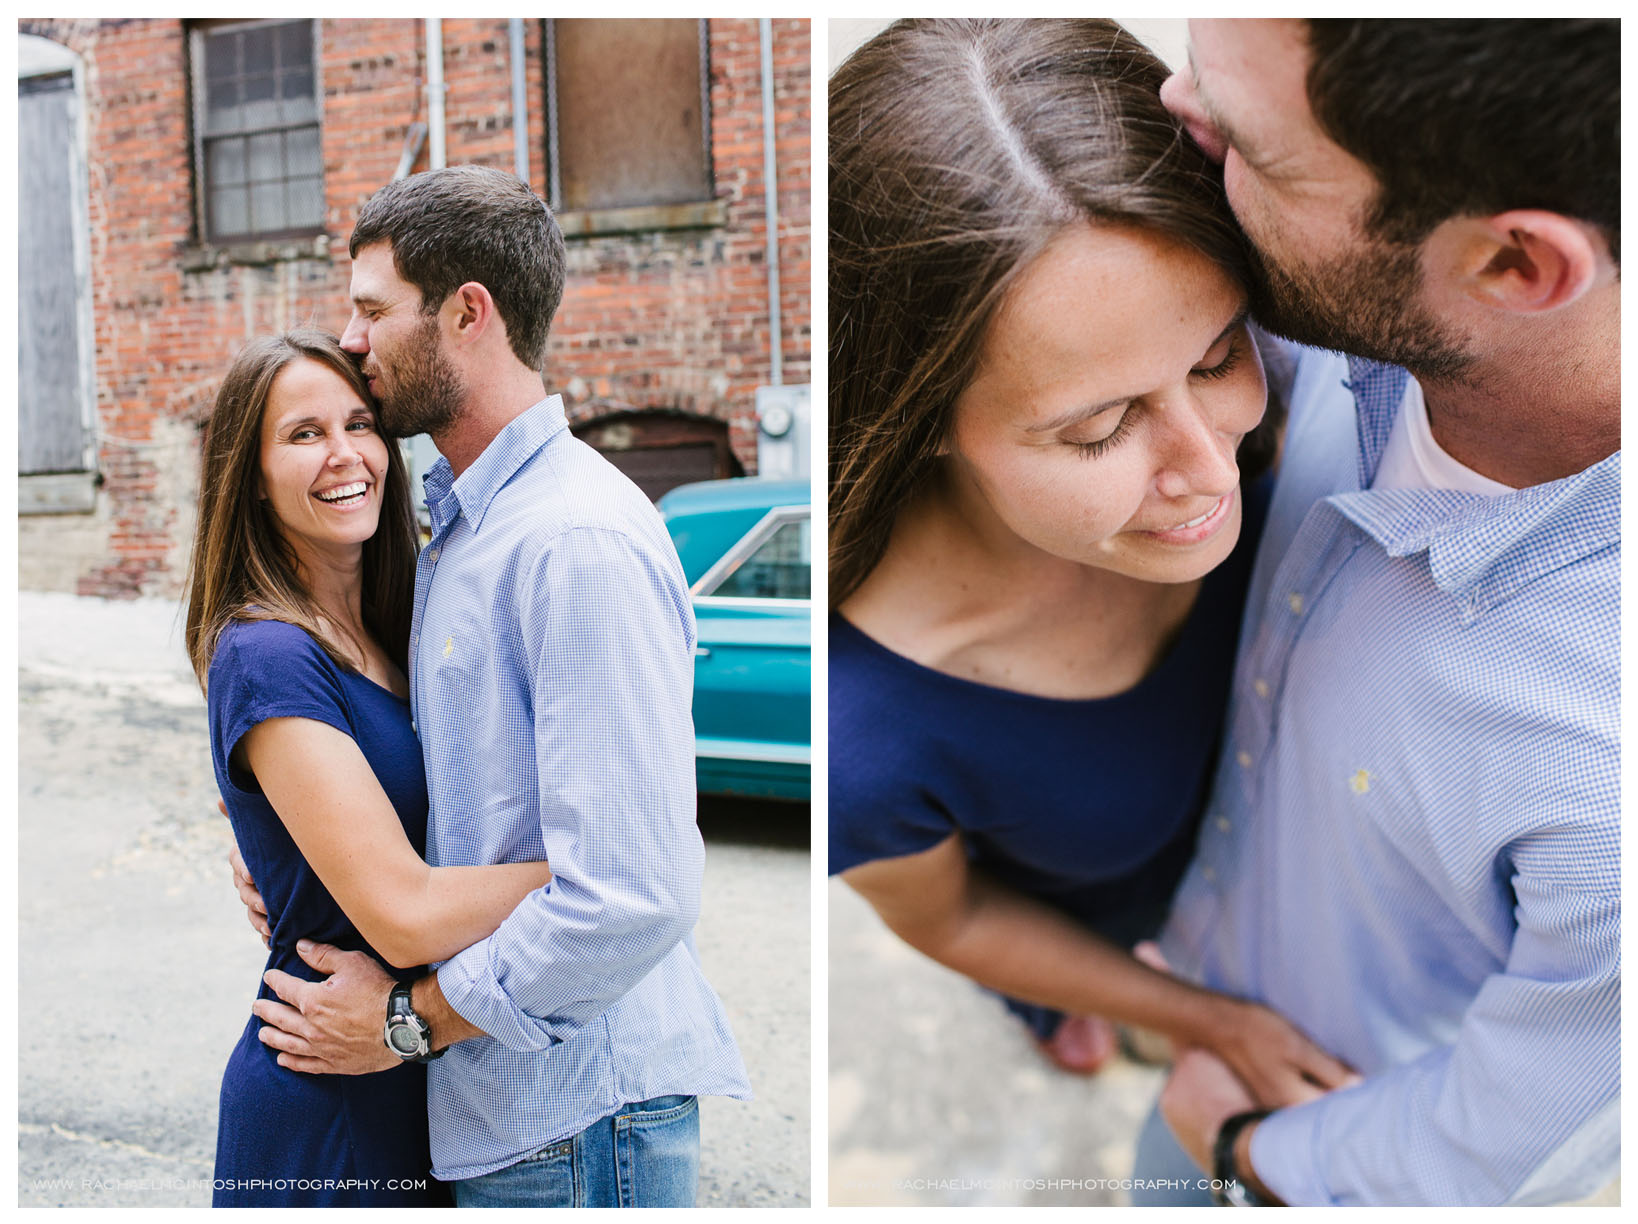 Down Town Asheville Engagement Session- Asheville Wedding Photography-20.jpg